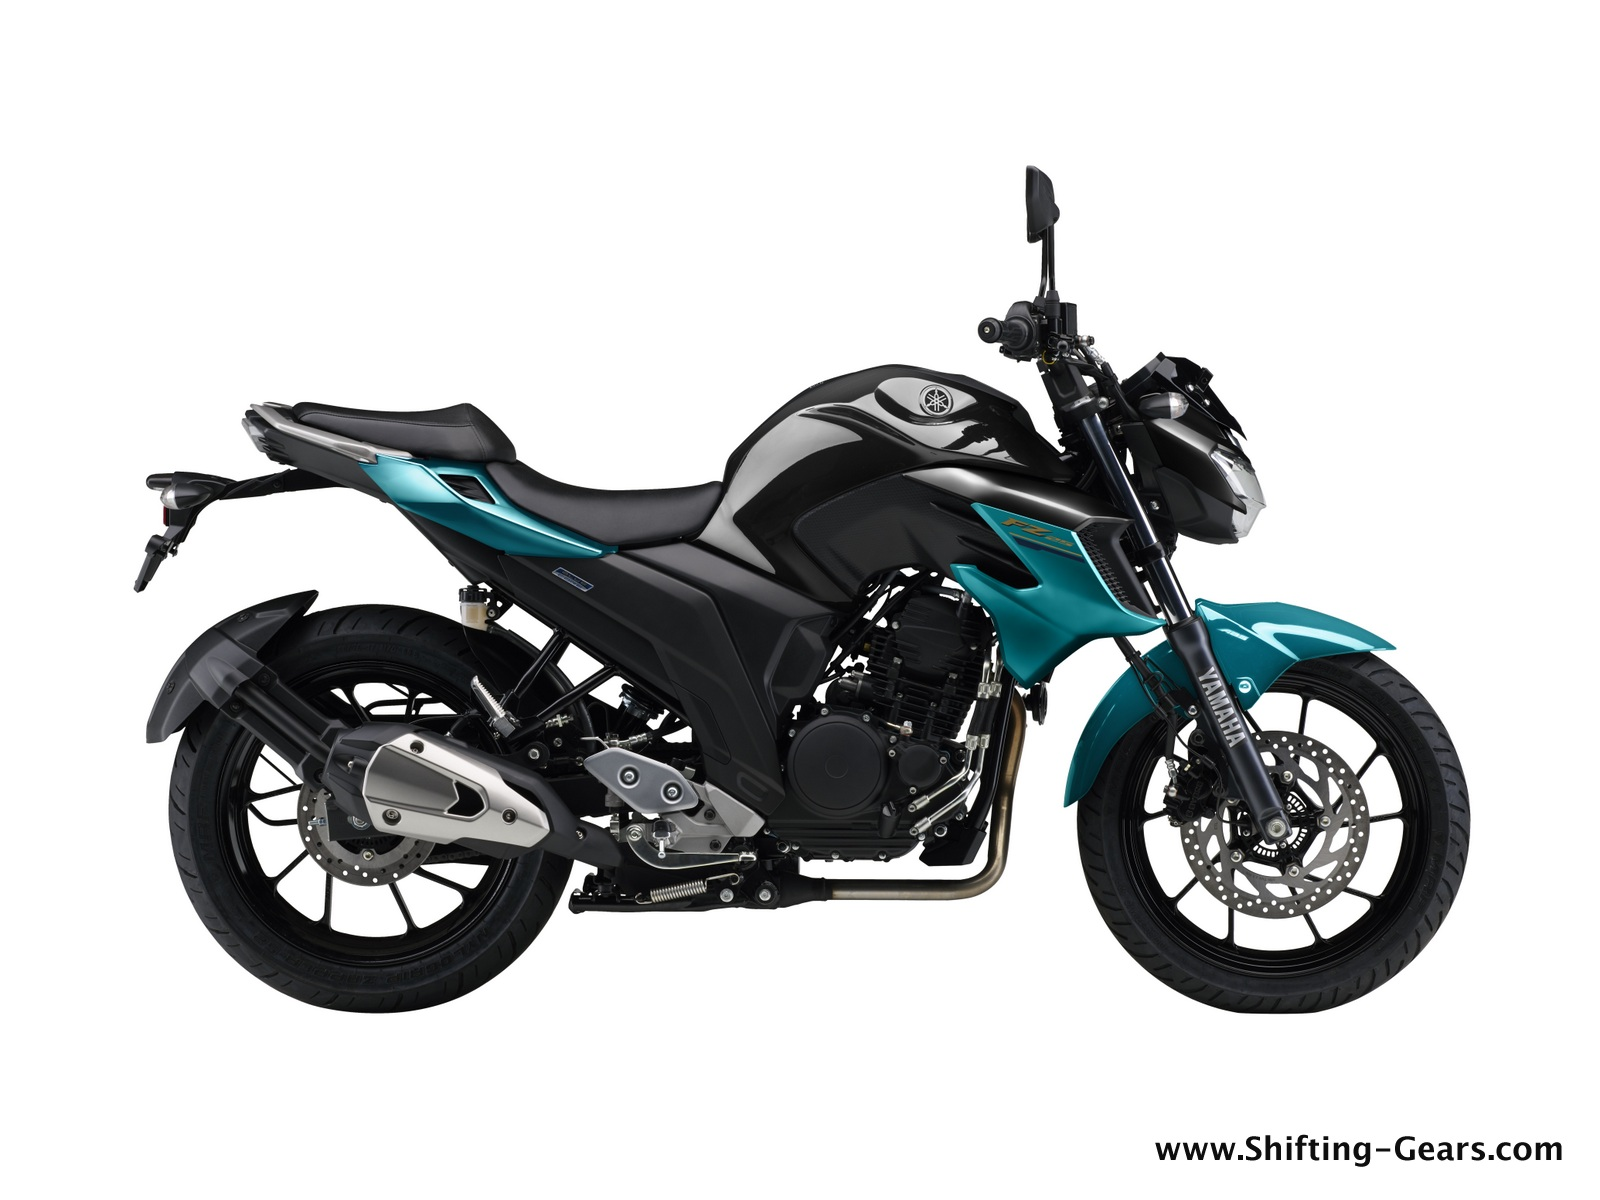 BMW Motorcycles Prices >> Yamaha FZ-25 & Fazer-25 get Dual-Channel ABS, prices start at INR 1.33 lakh | Shifting-Gears